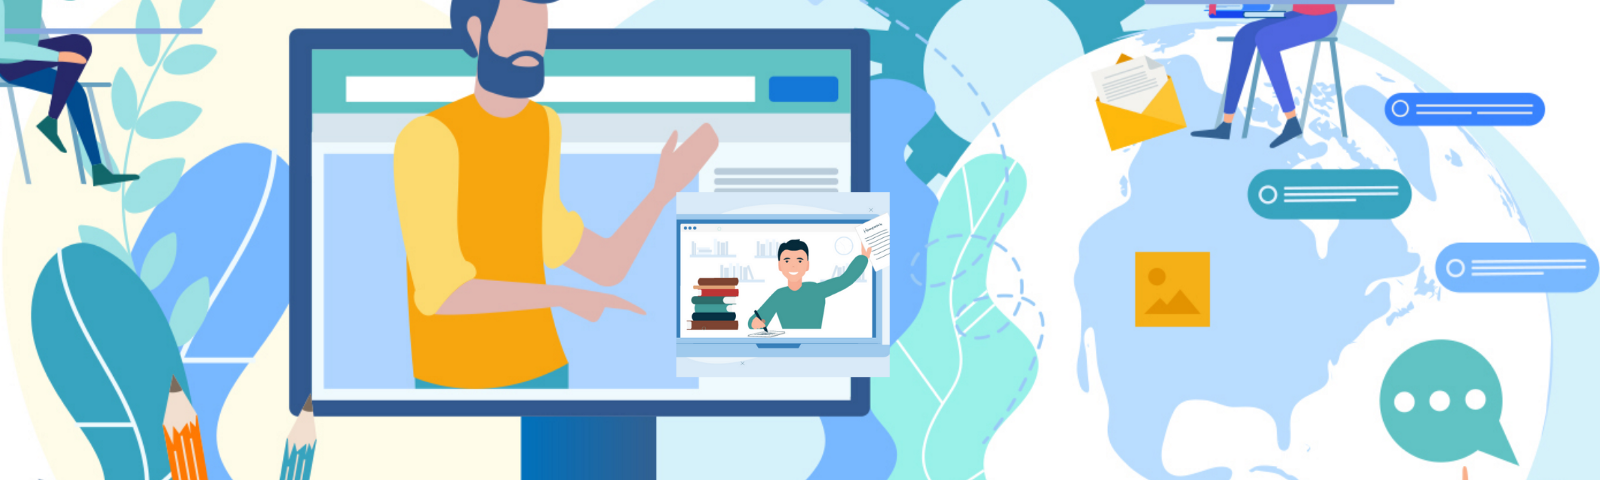 eduTinker is a user-friendly online class management tool helping School/College/Institution administrators manage classes.